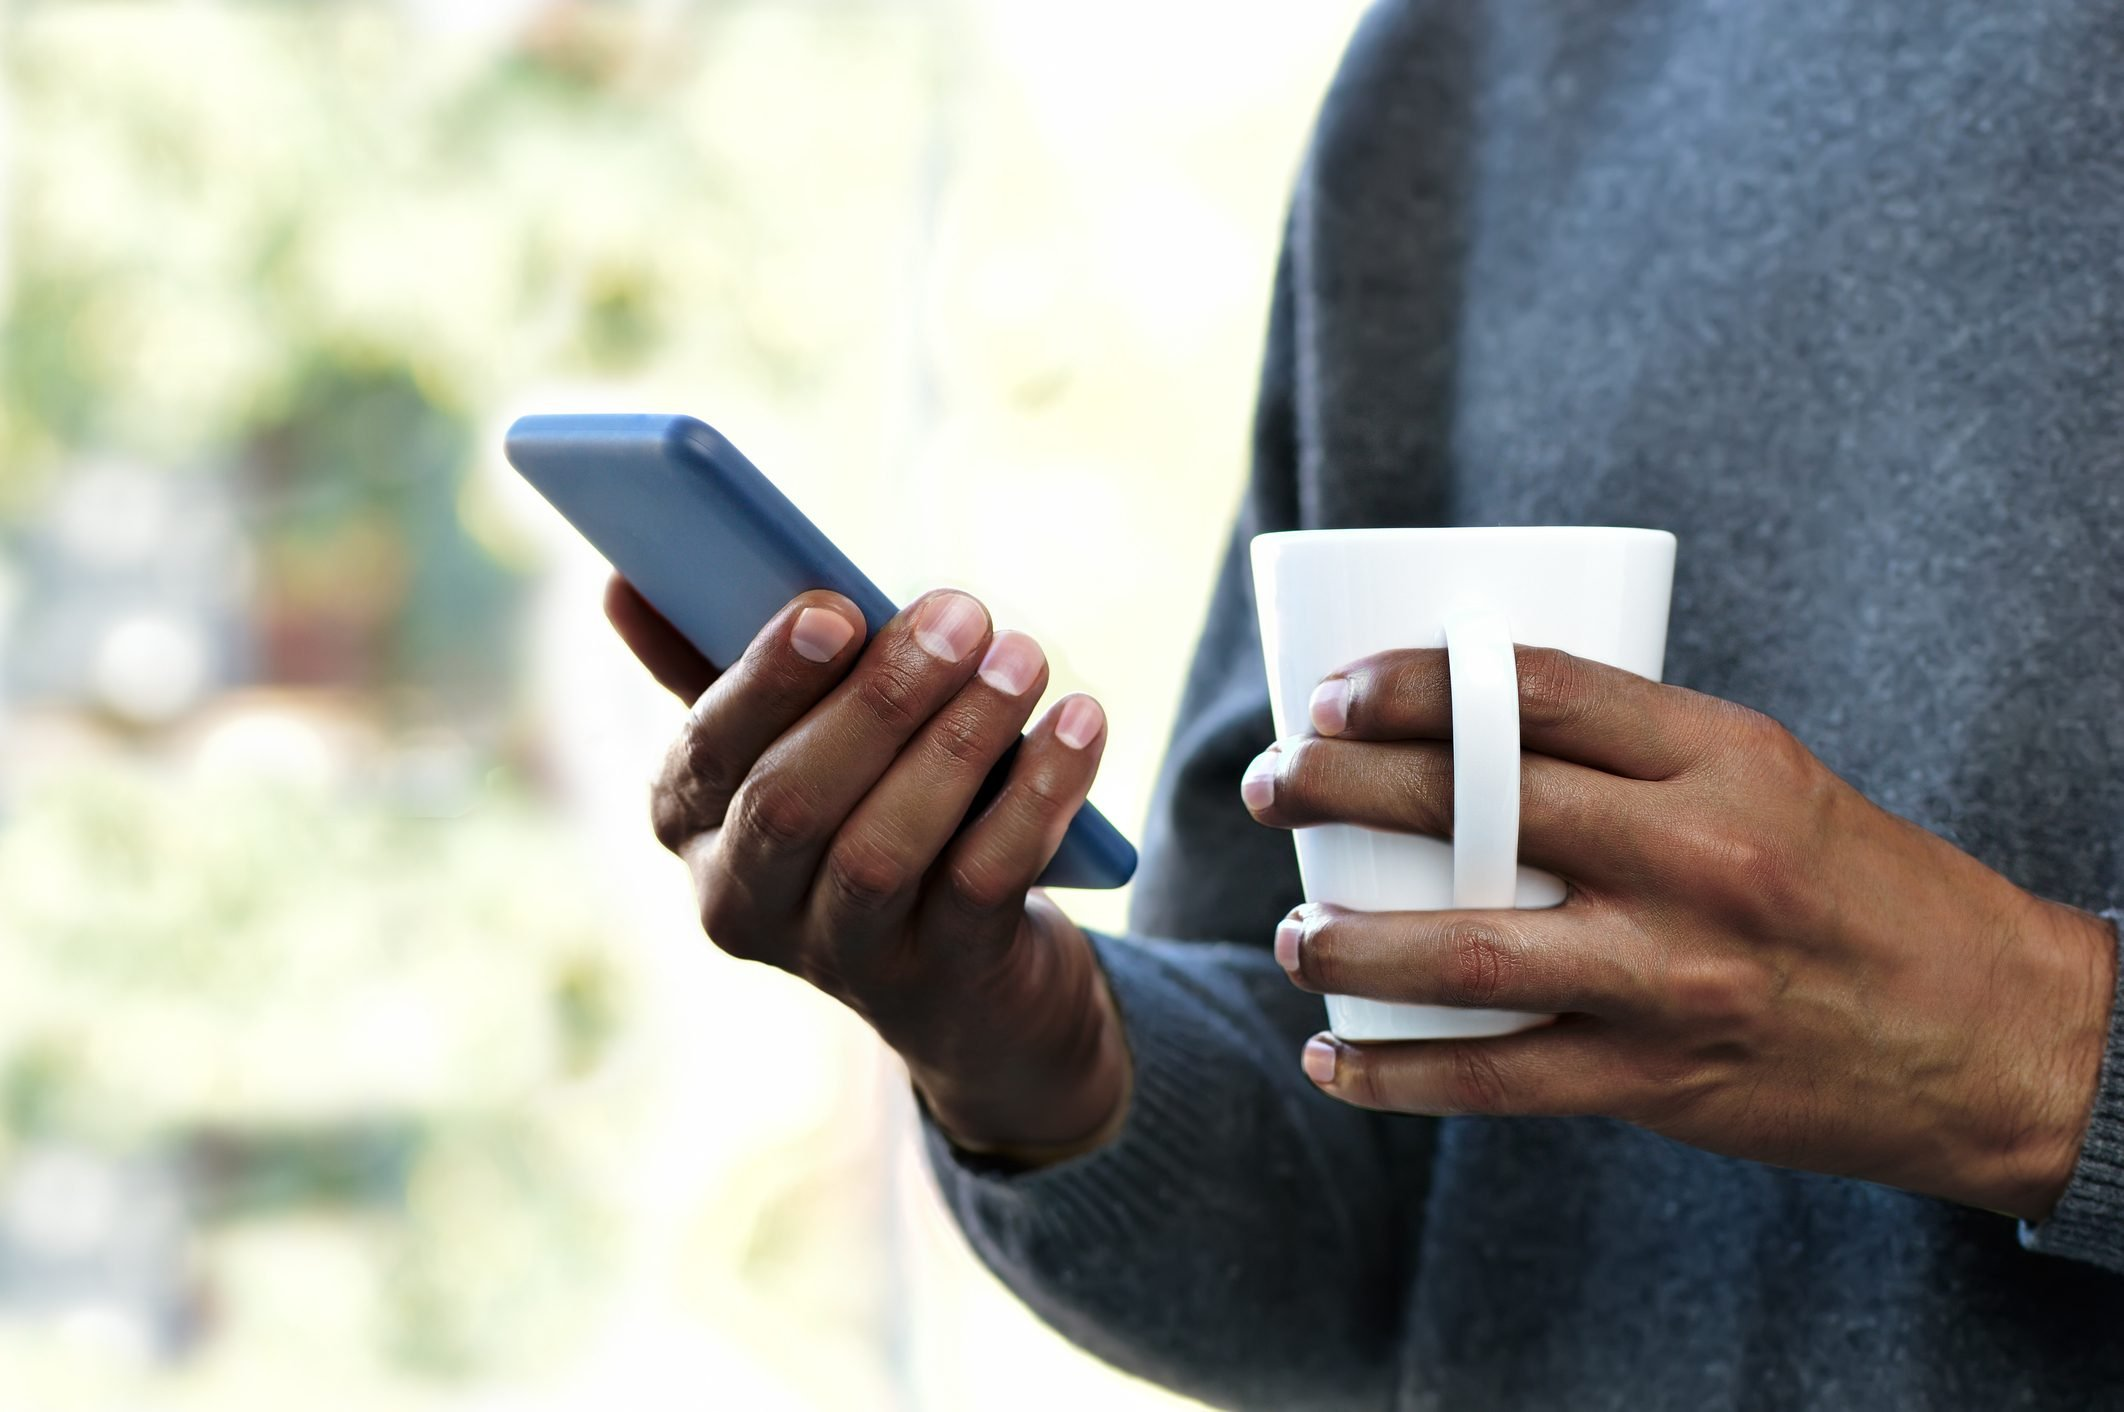 close up of person holding coffee mug and smartphone